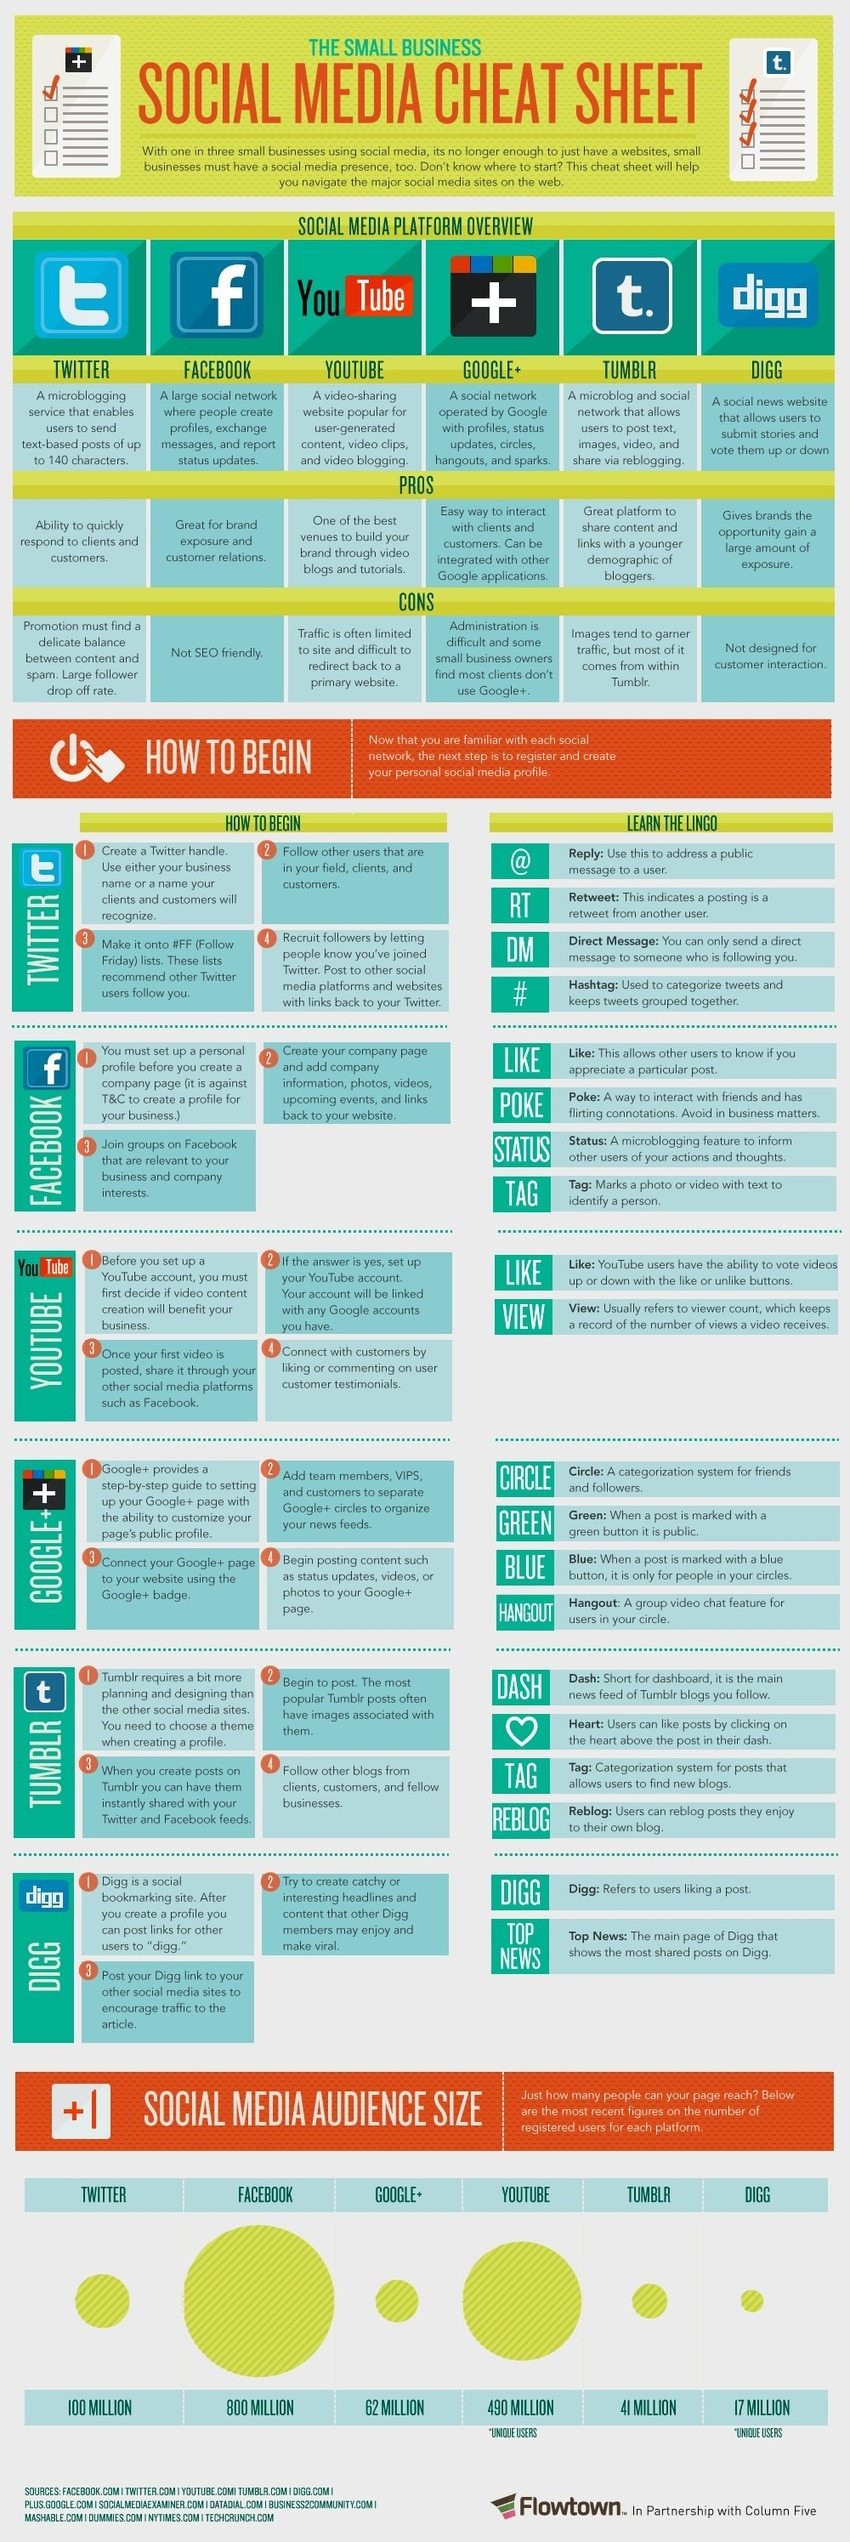 After all this time there was actually a cheat sheet? #socialmedia #infographic